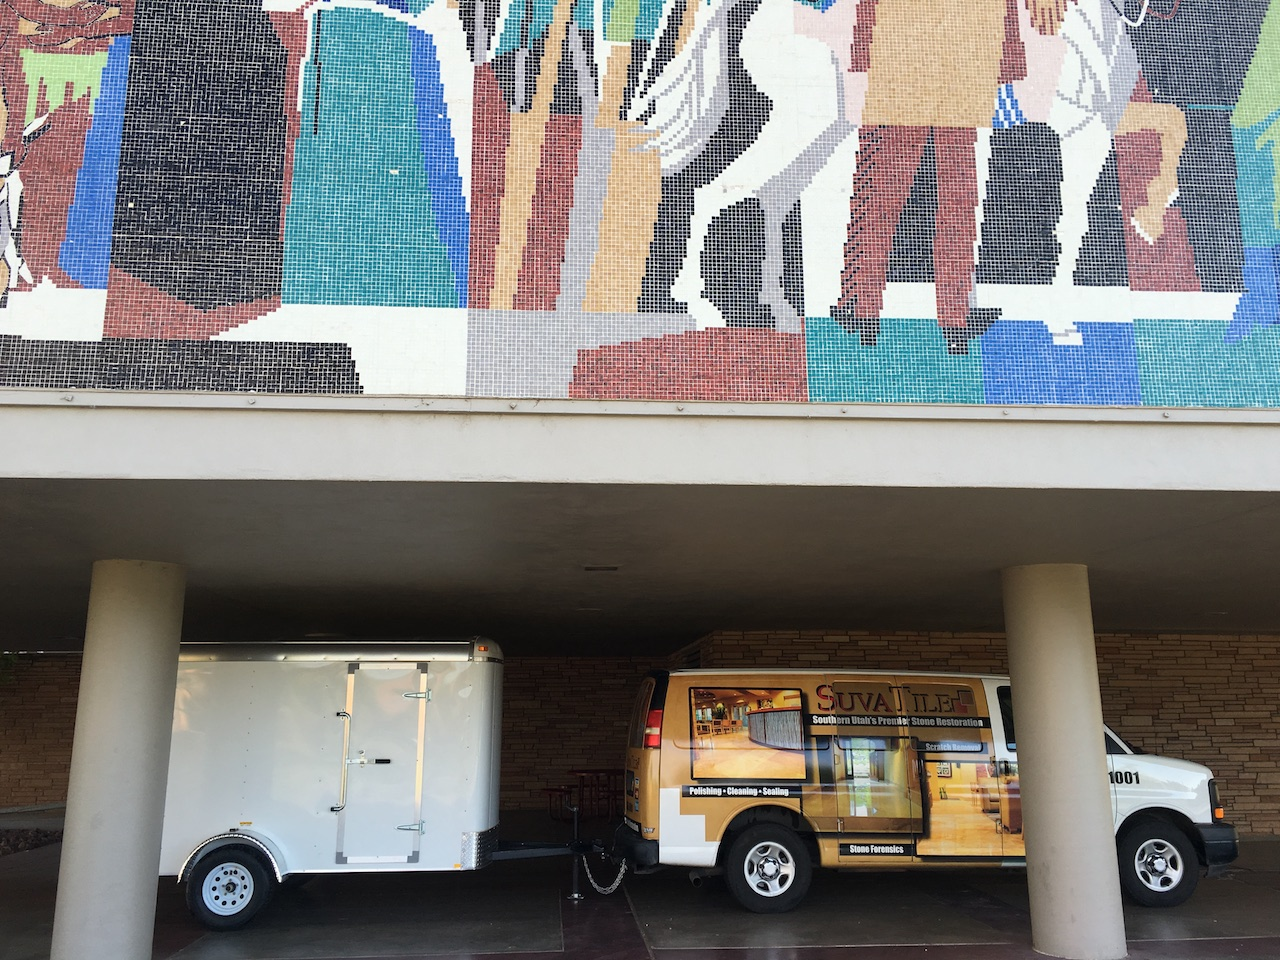 The Dixie State University Mural is big....really big!